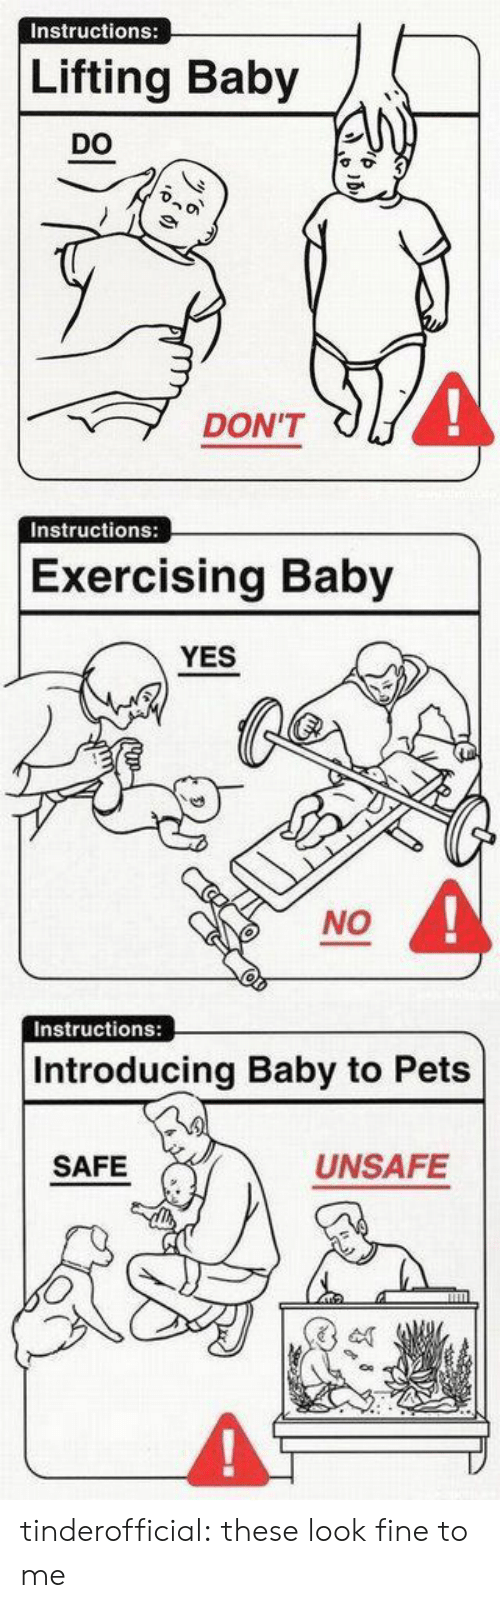 Tumblr, Blog, and Pets: Instructions:  Lifting Baby  DO  4  DON'T   Instructions:  Exercising Baby  YES  NO   Instructions:  Introducing Baby to Pets  SAFE  UNSAFE tinderofficial: these look fine to me